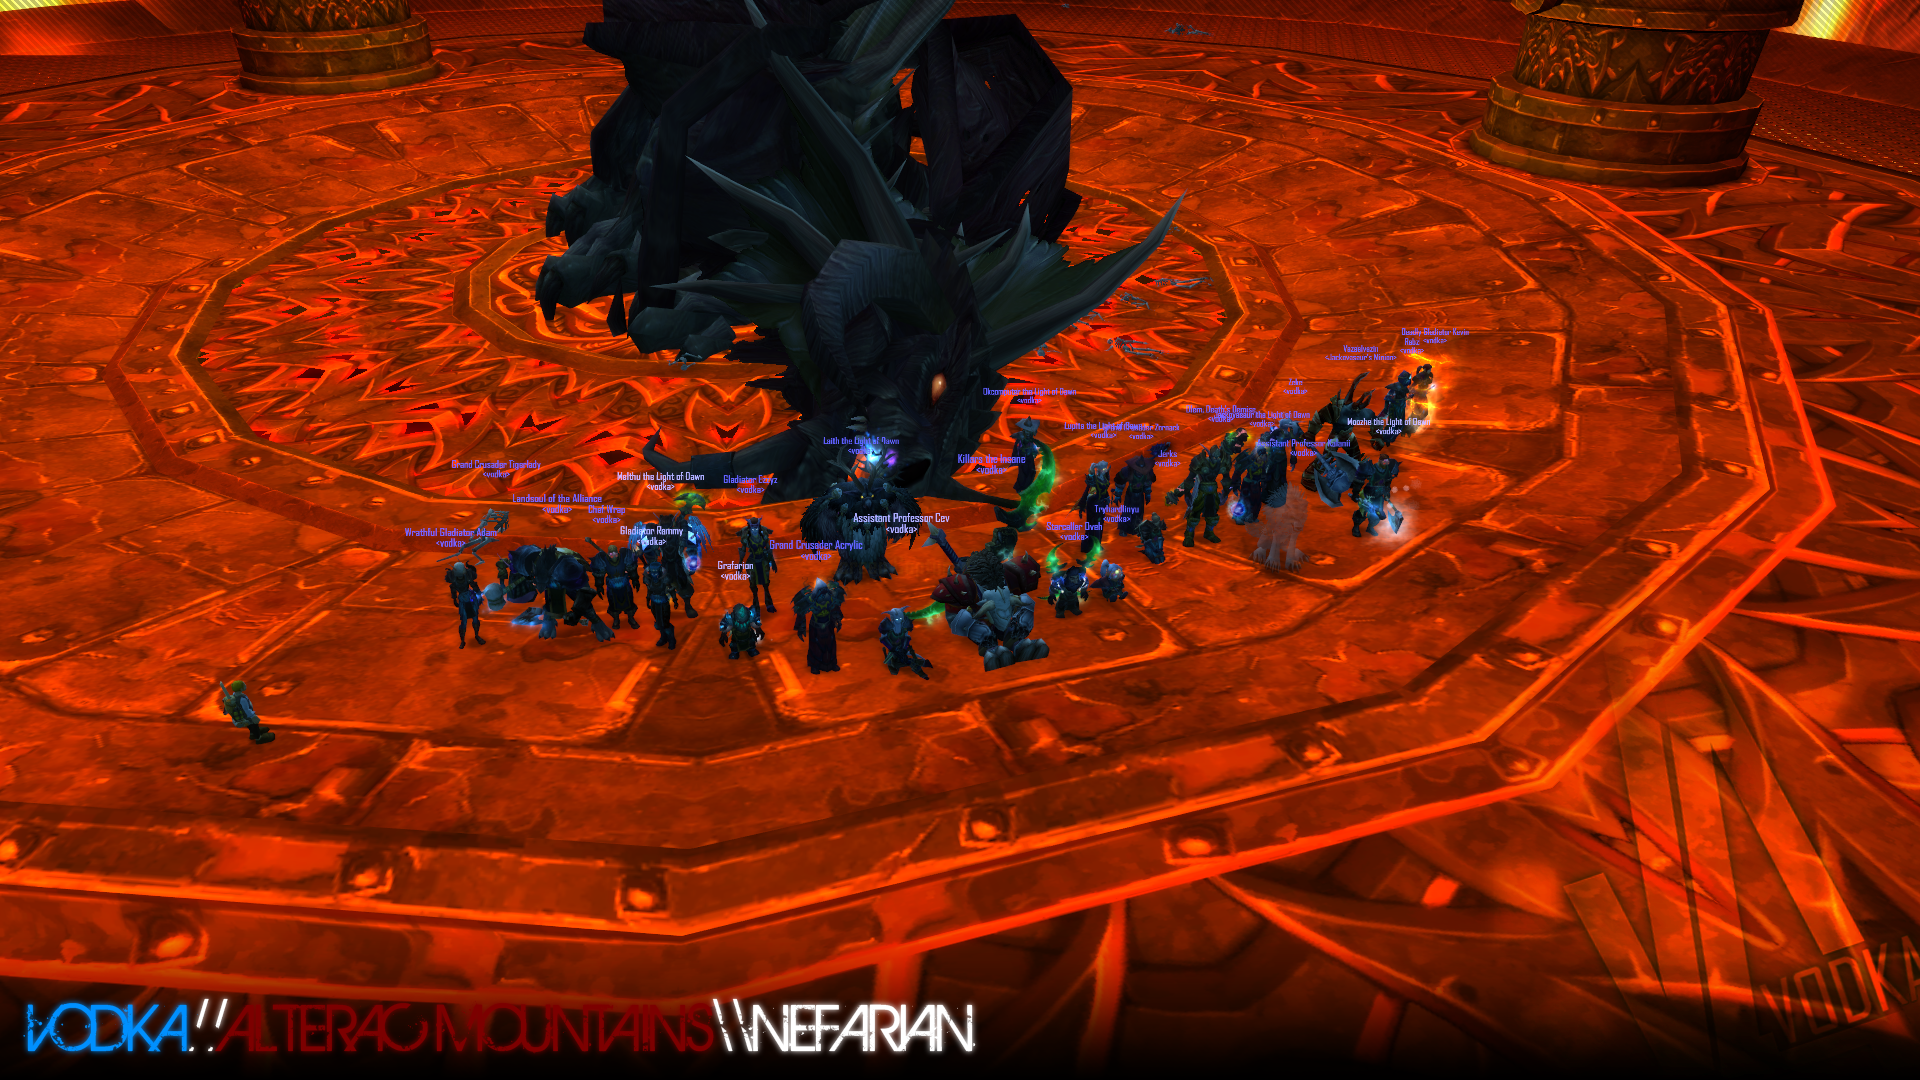 Vodka guild Nefarian wow screenshot